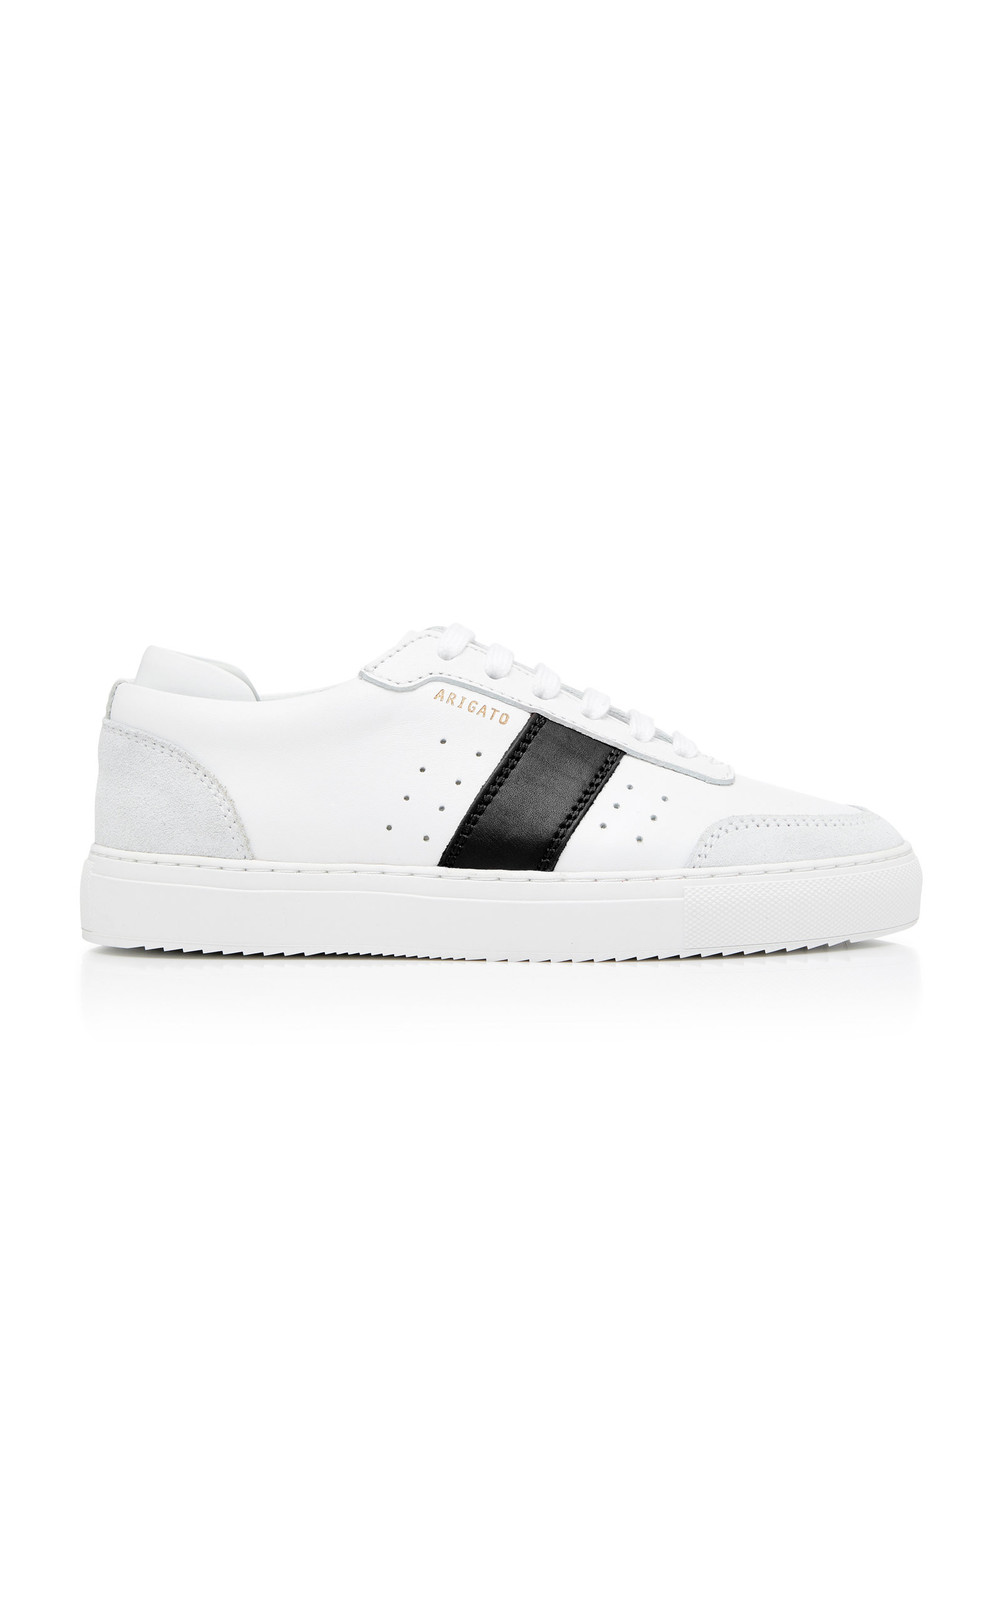 Axel Arigato Striped Leather Low-Top Sneakers in white